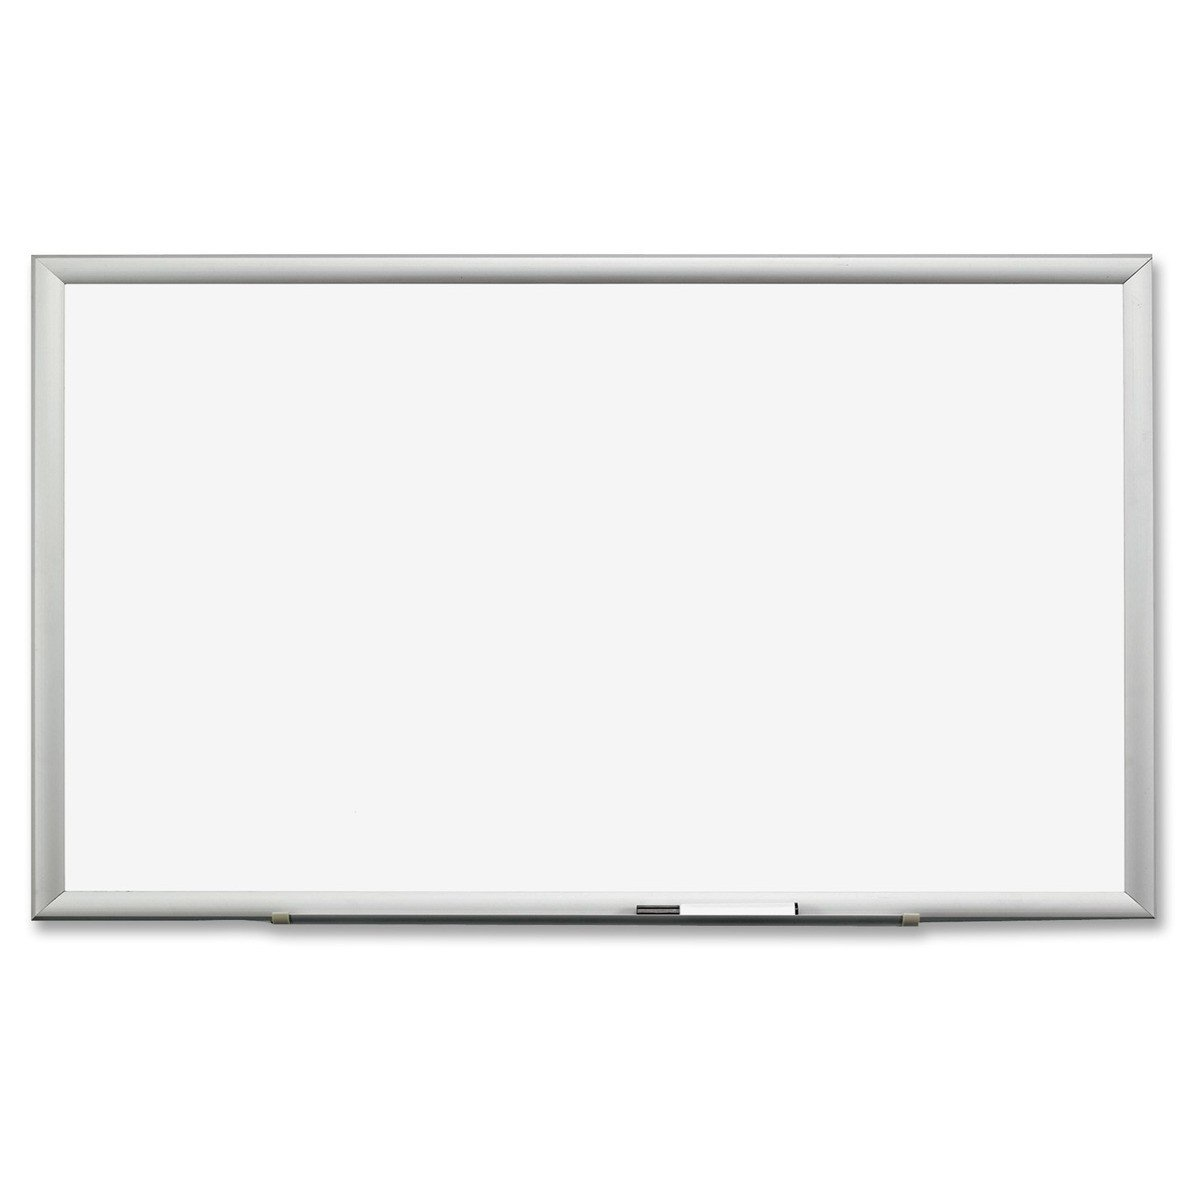 3M DEP6036A Office Supplies - Porcelain Dry Erase Board Magnetic (60'' x 36'' x 1'') with 4 Dry Erase Markers